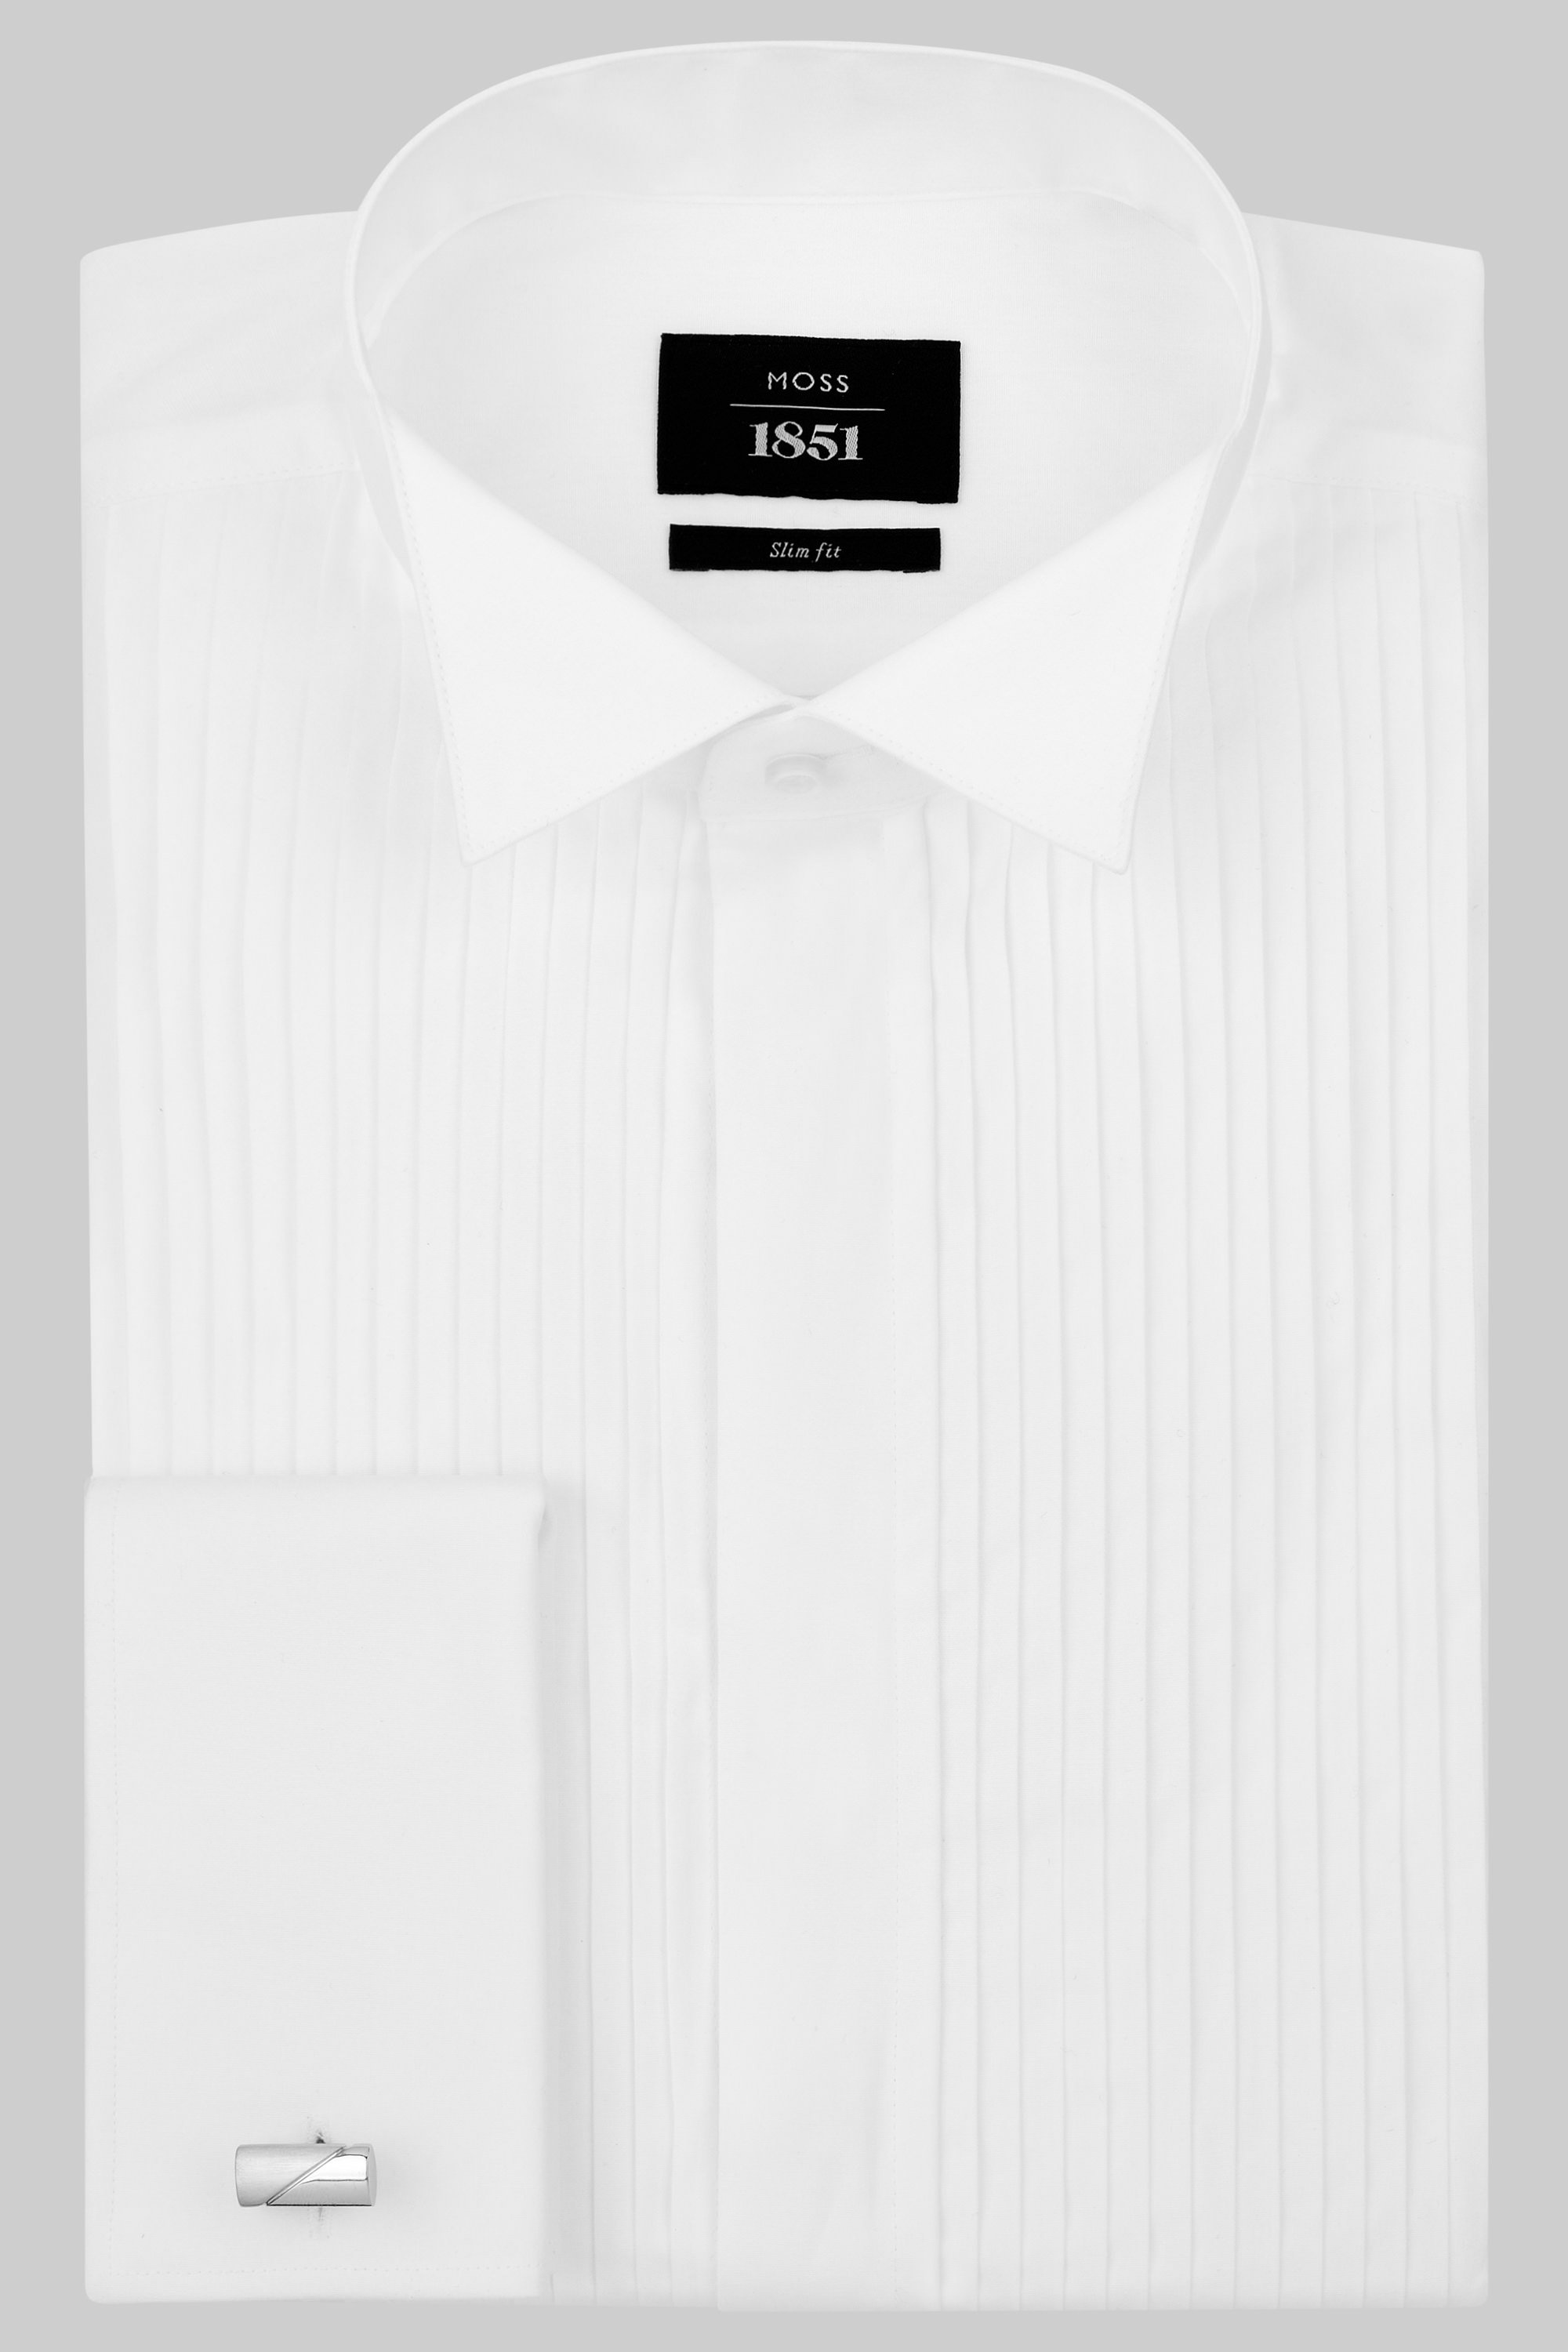 Moss Bros Moss 1851 Slim Fit Wing Collar Pleated White Dress Shirt